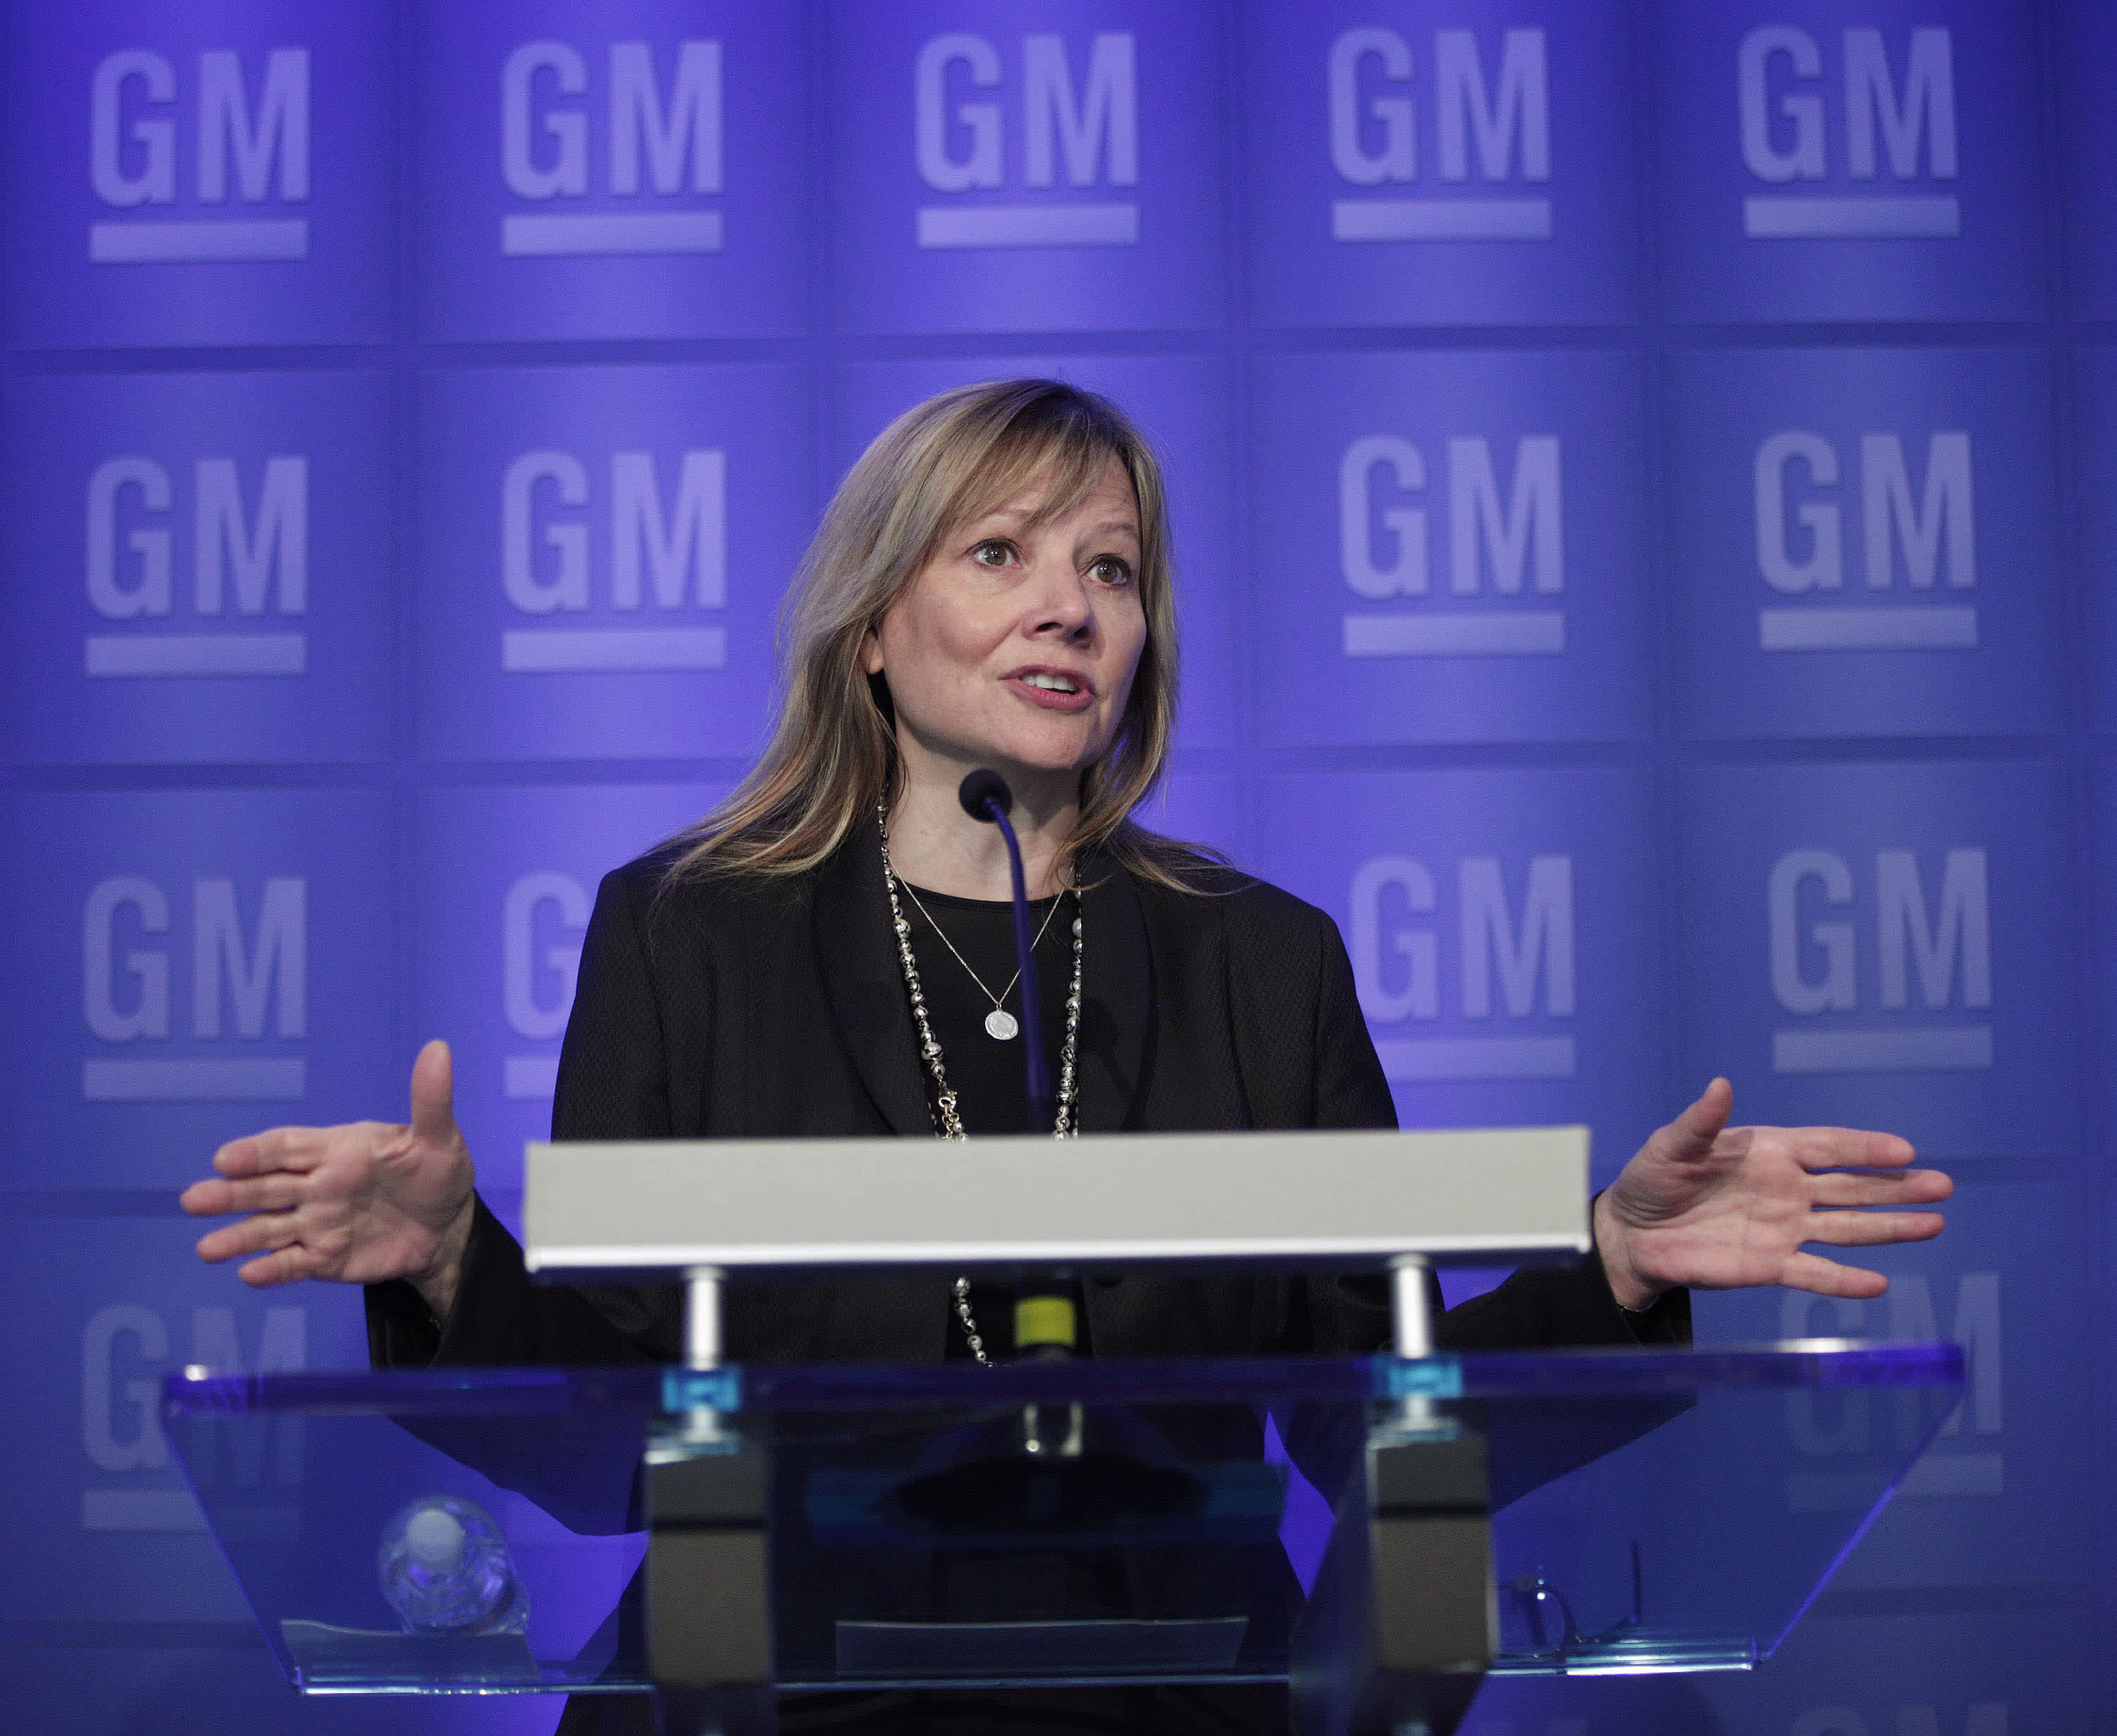 GM withdraws support for Trump's lawsuit against California over emissions